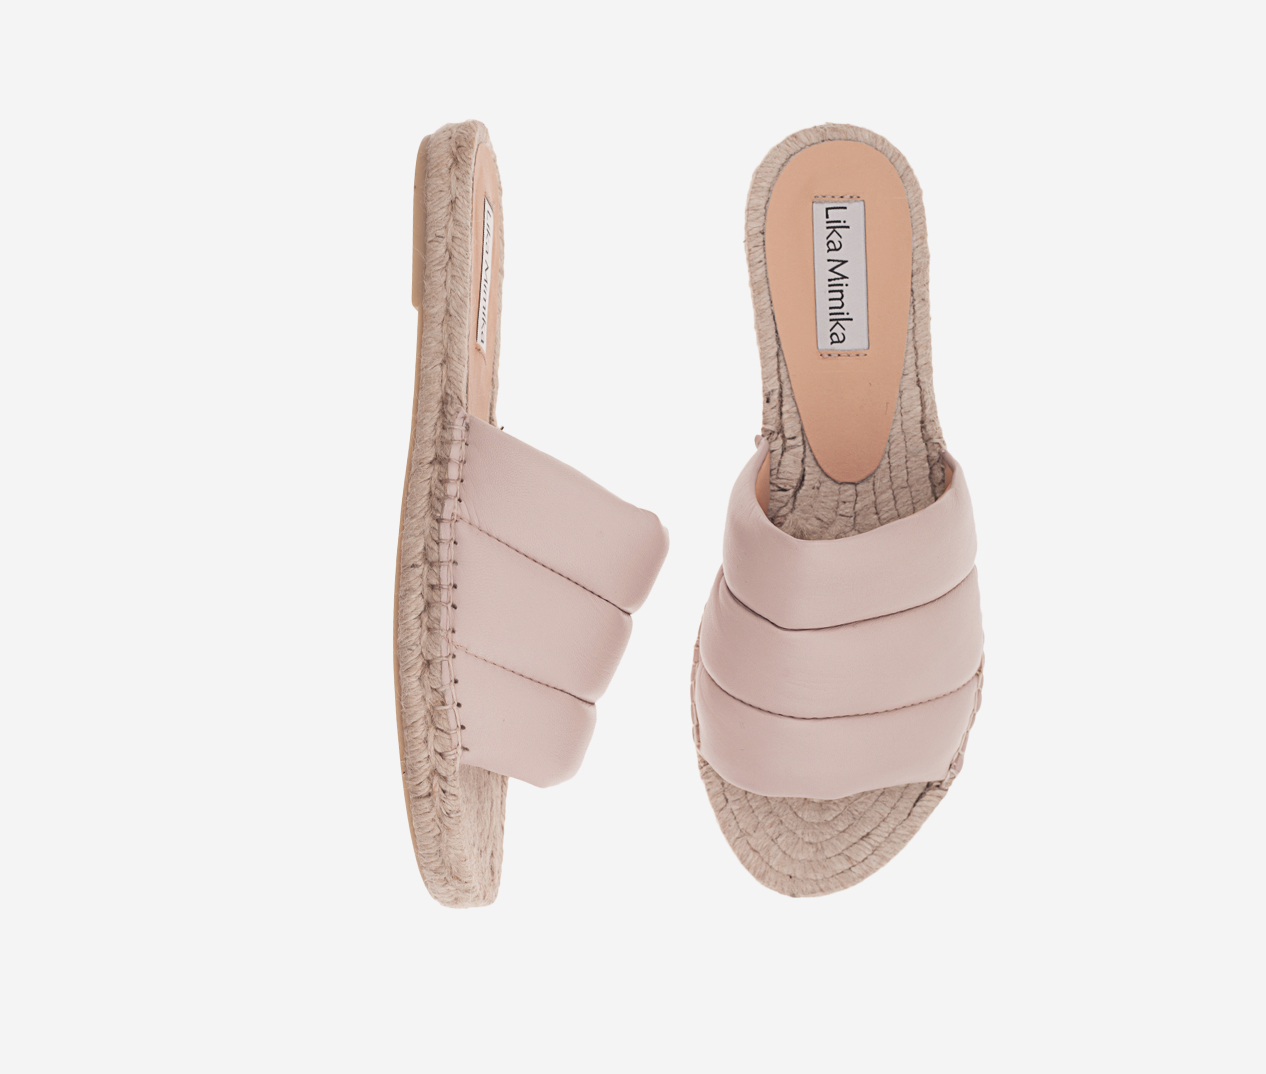 NUDE - Pre Order End of April